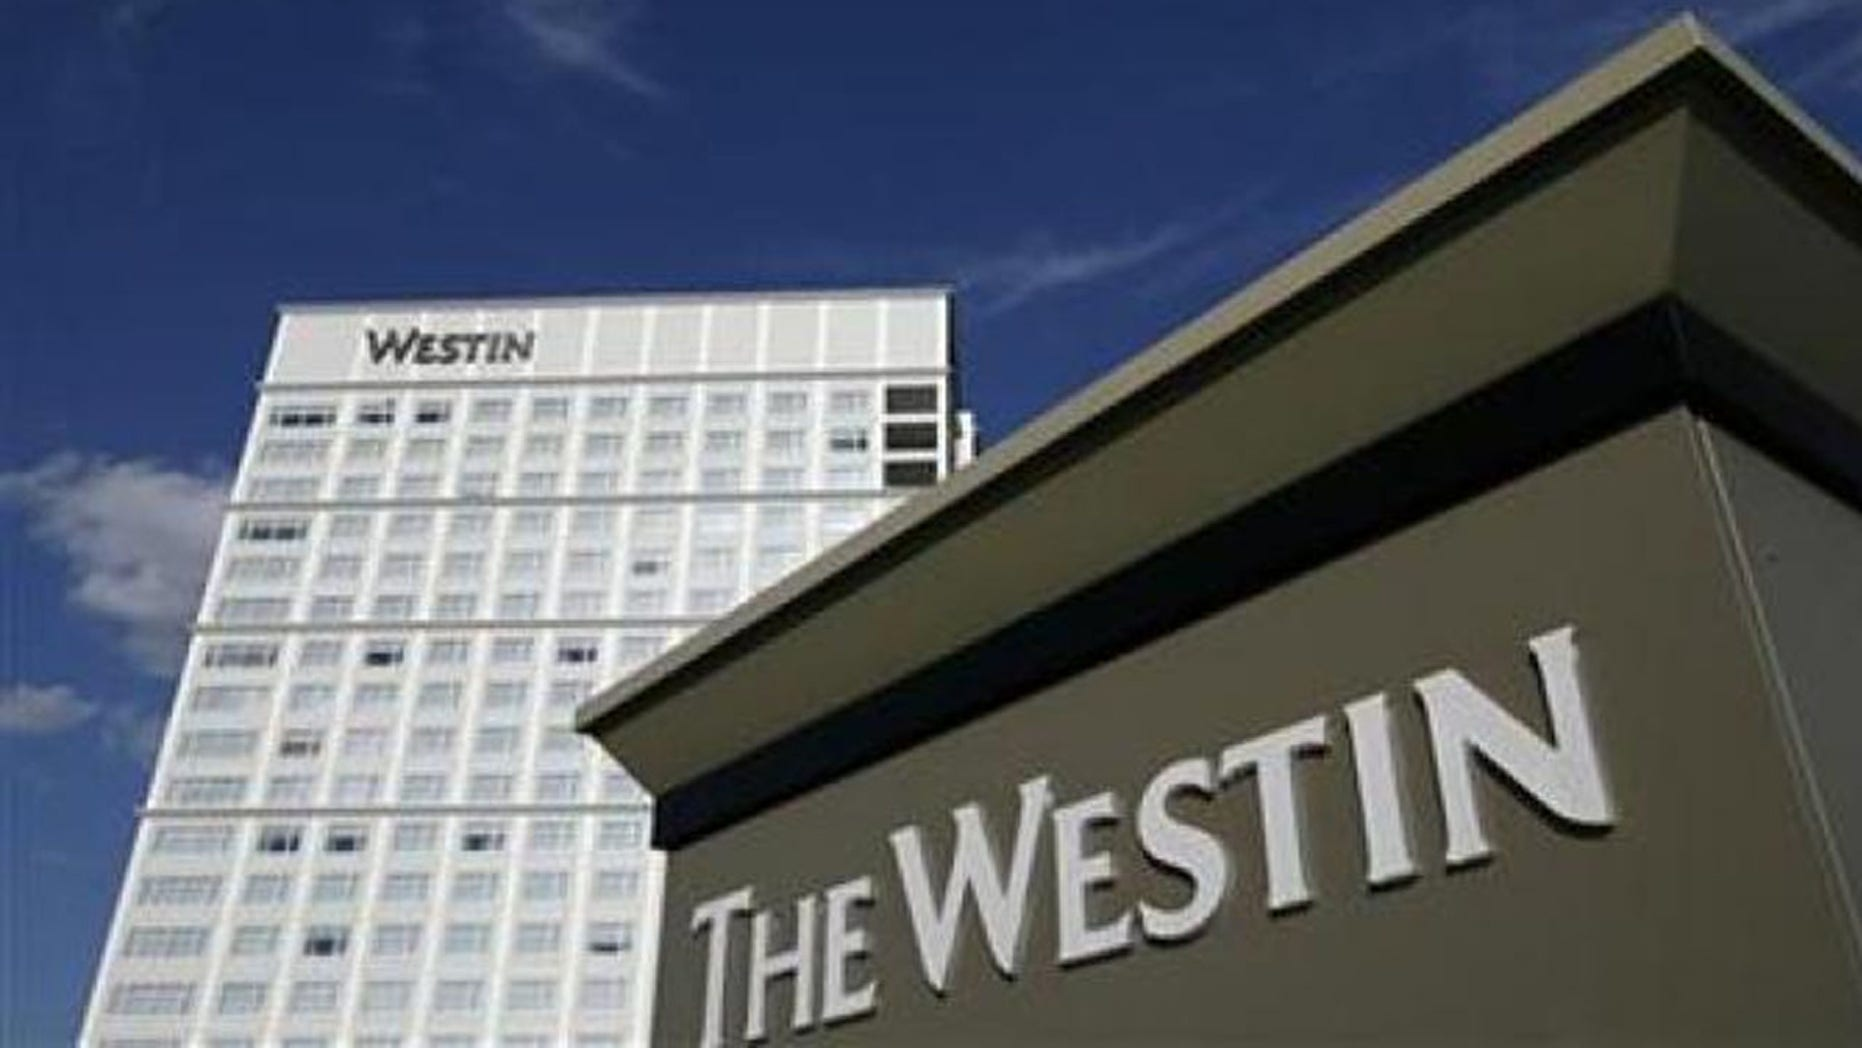 Starwood Hotels & Resorts Worldwide Inc. said Monday that it still favors the Marriott deal, but that it's looking at the latest bid.